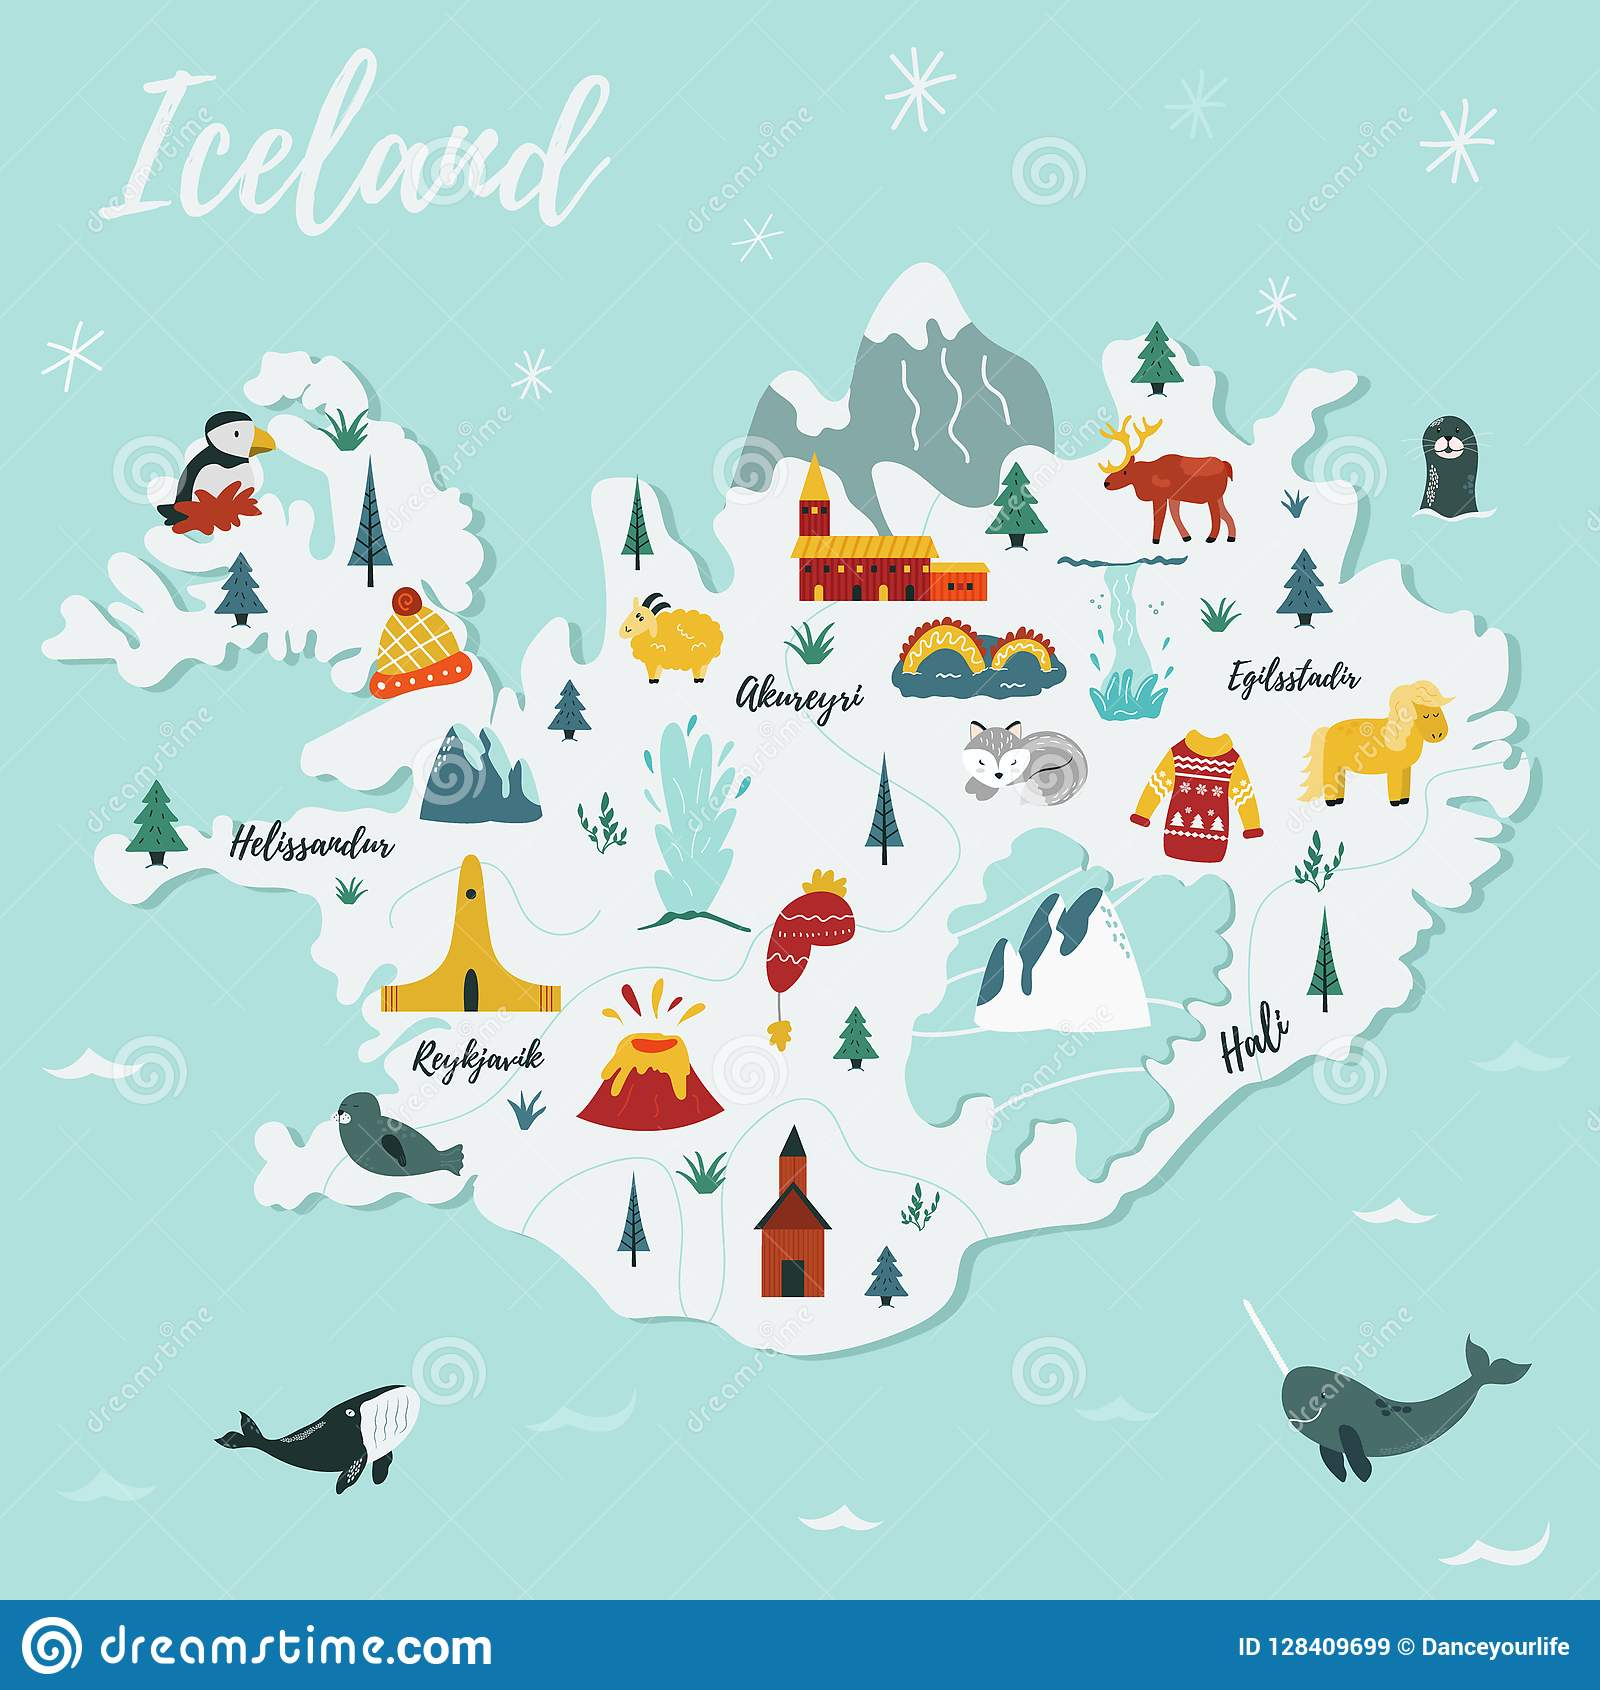 Iceland cartoon vector map. Travel illustration